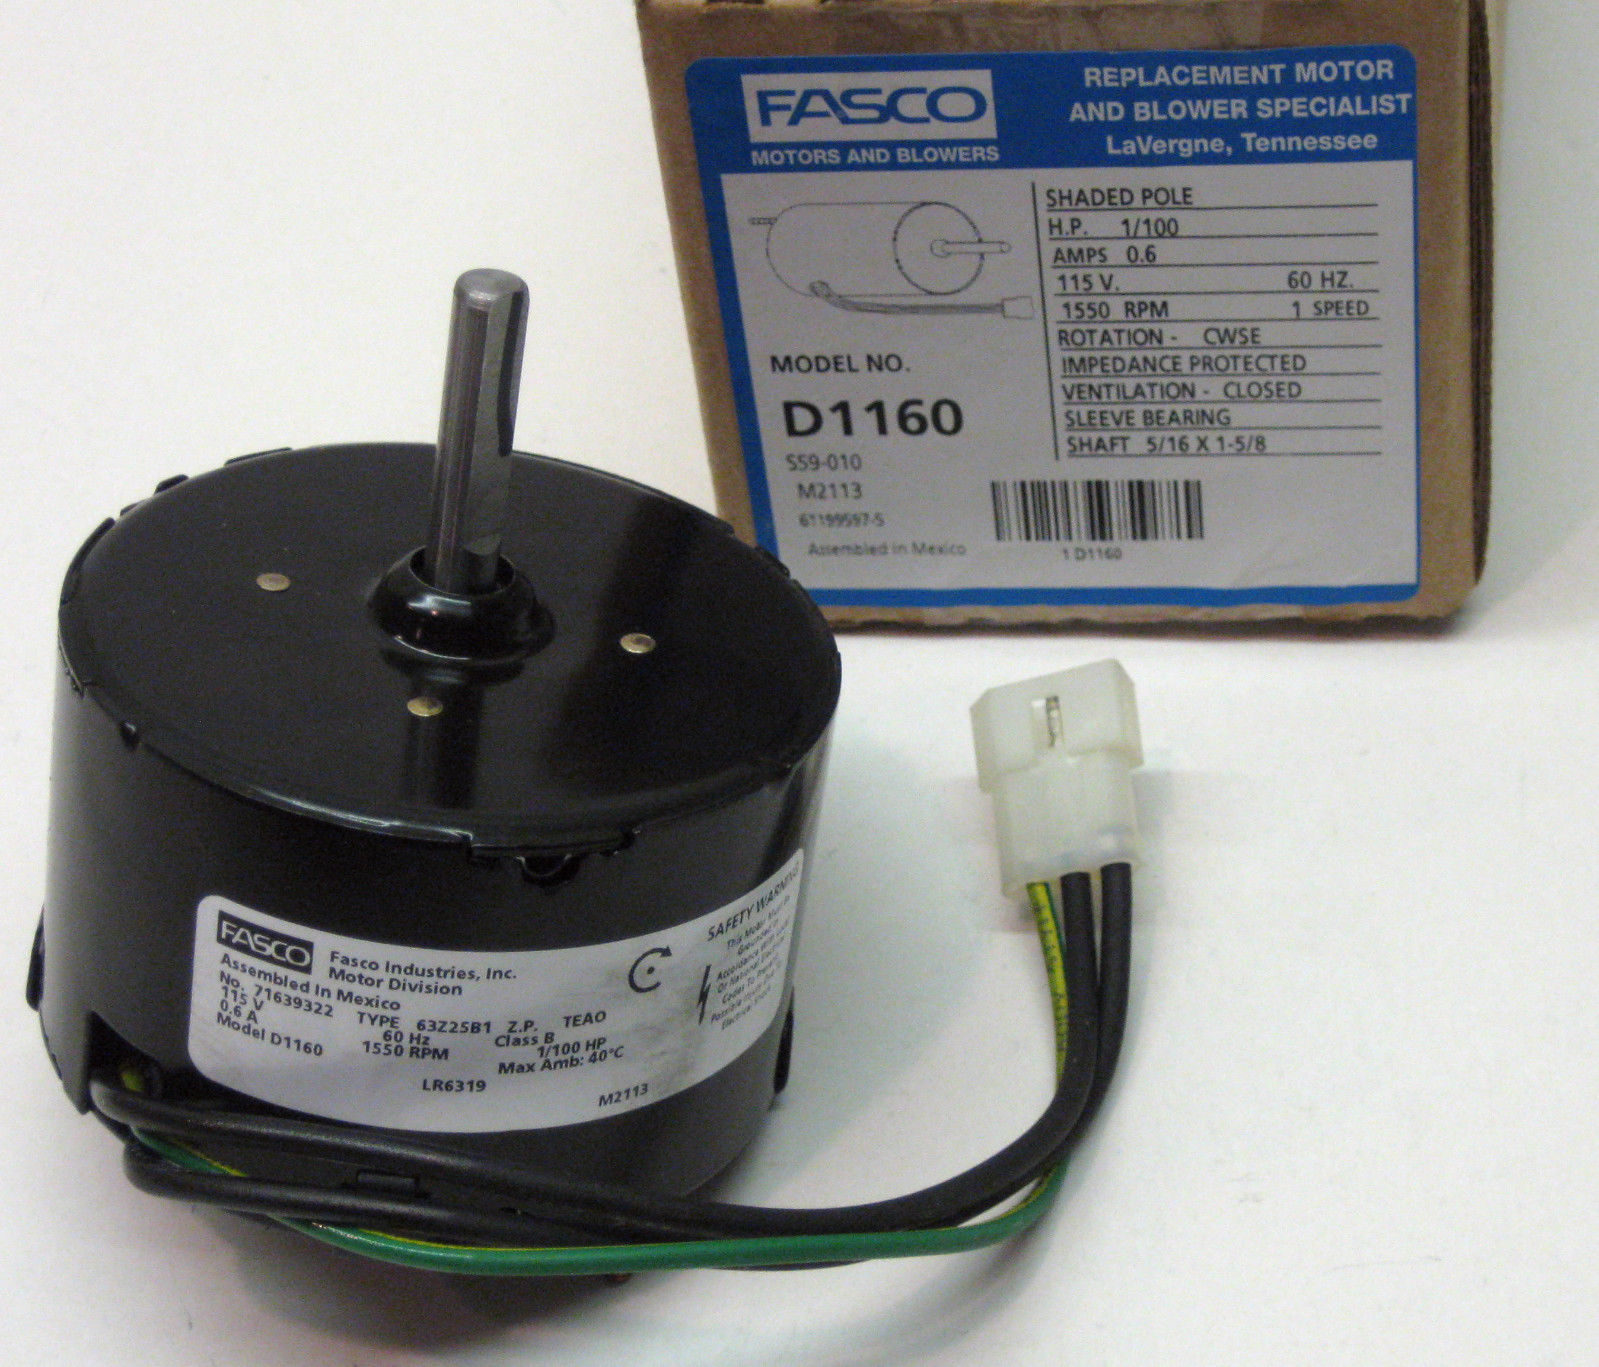 Cook bathroom exhaust fans - D1160 Fasco Bathroom Fan Vent Motor For 7163 2593 655 661 663 655n 668 763 768